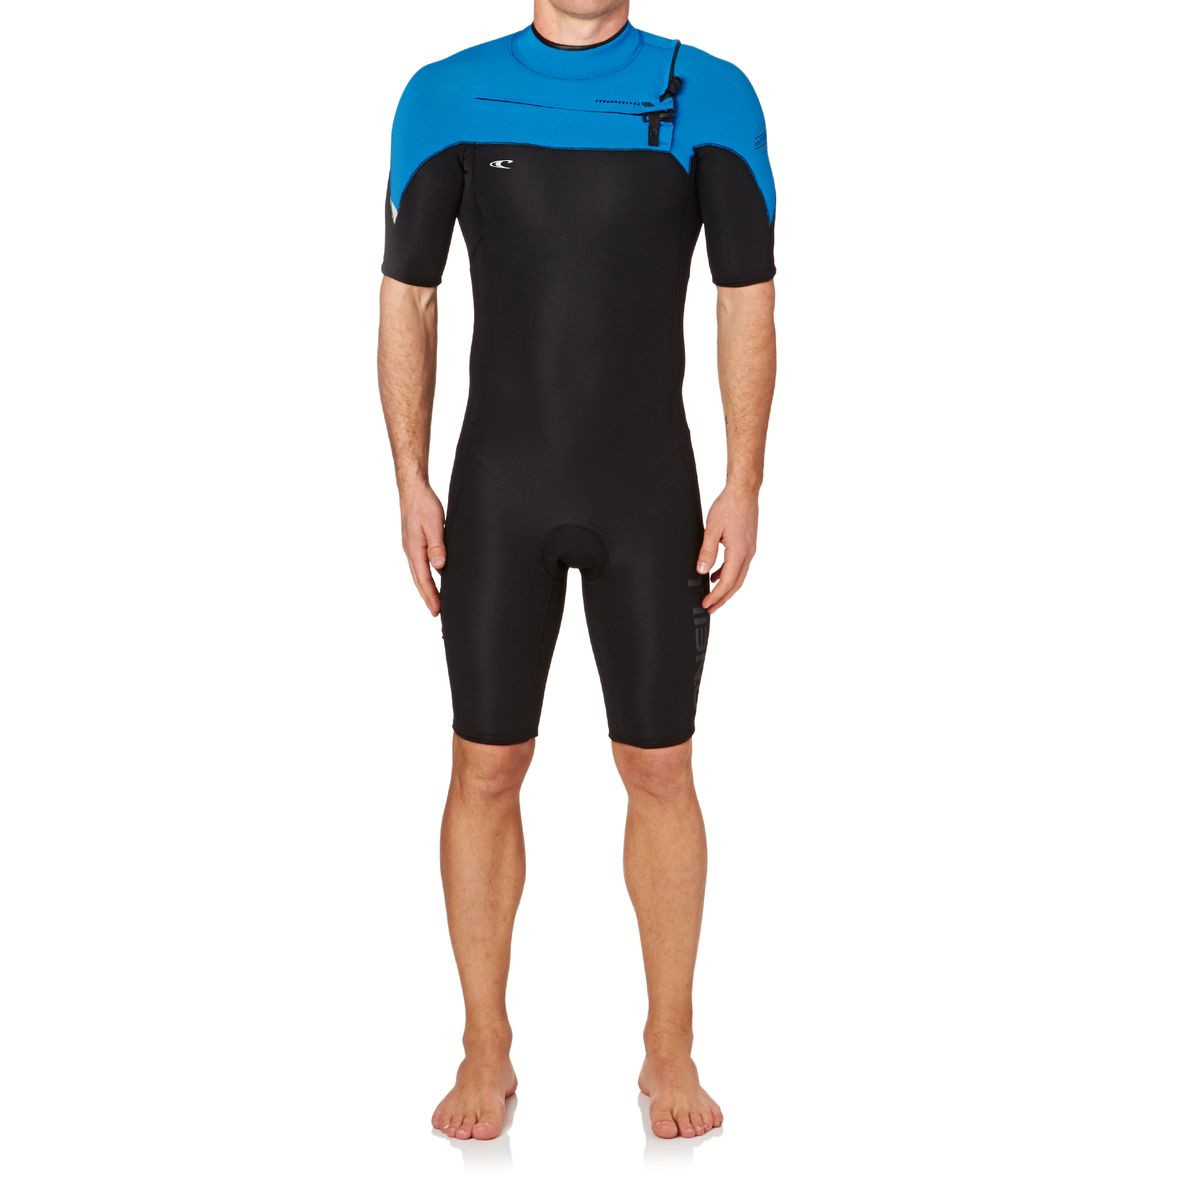 O'Neill Hyperfreak 2mm 2007 Chest Zip Short Sleeve Shorty Wetsuit - Black/ Bright Blue/ Cool Grey